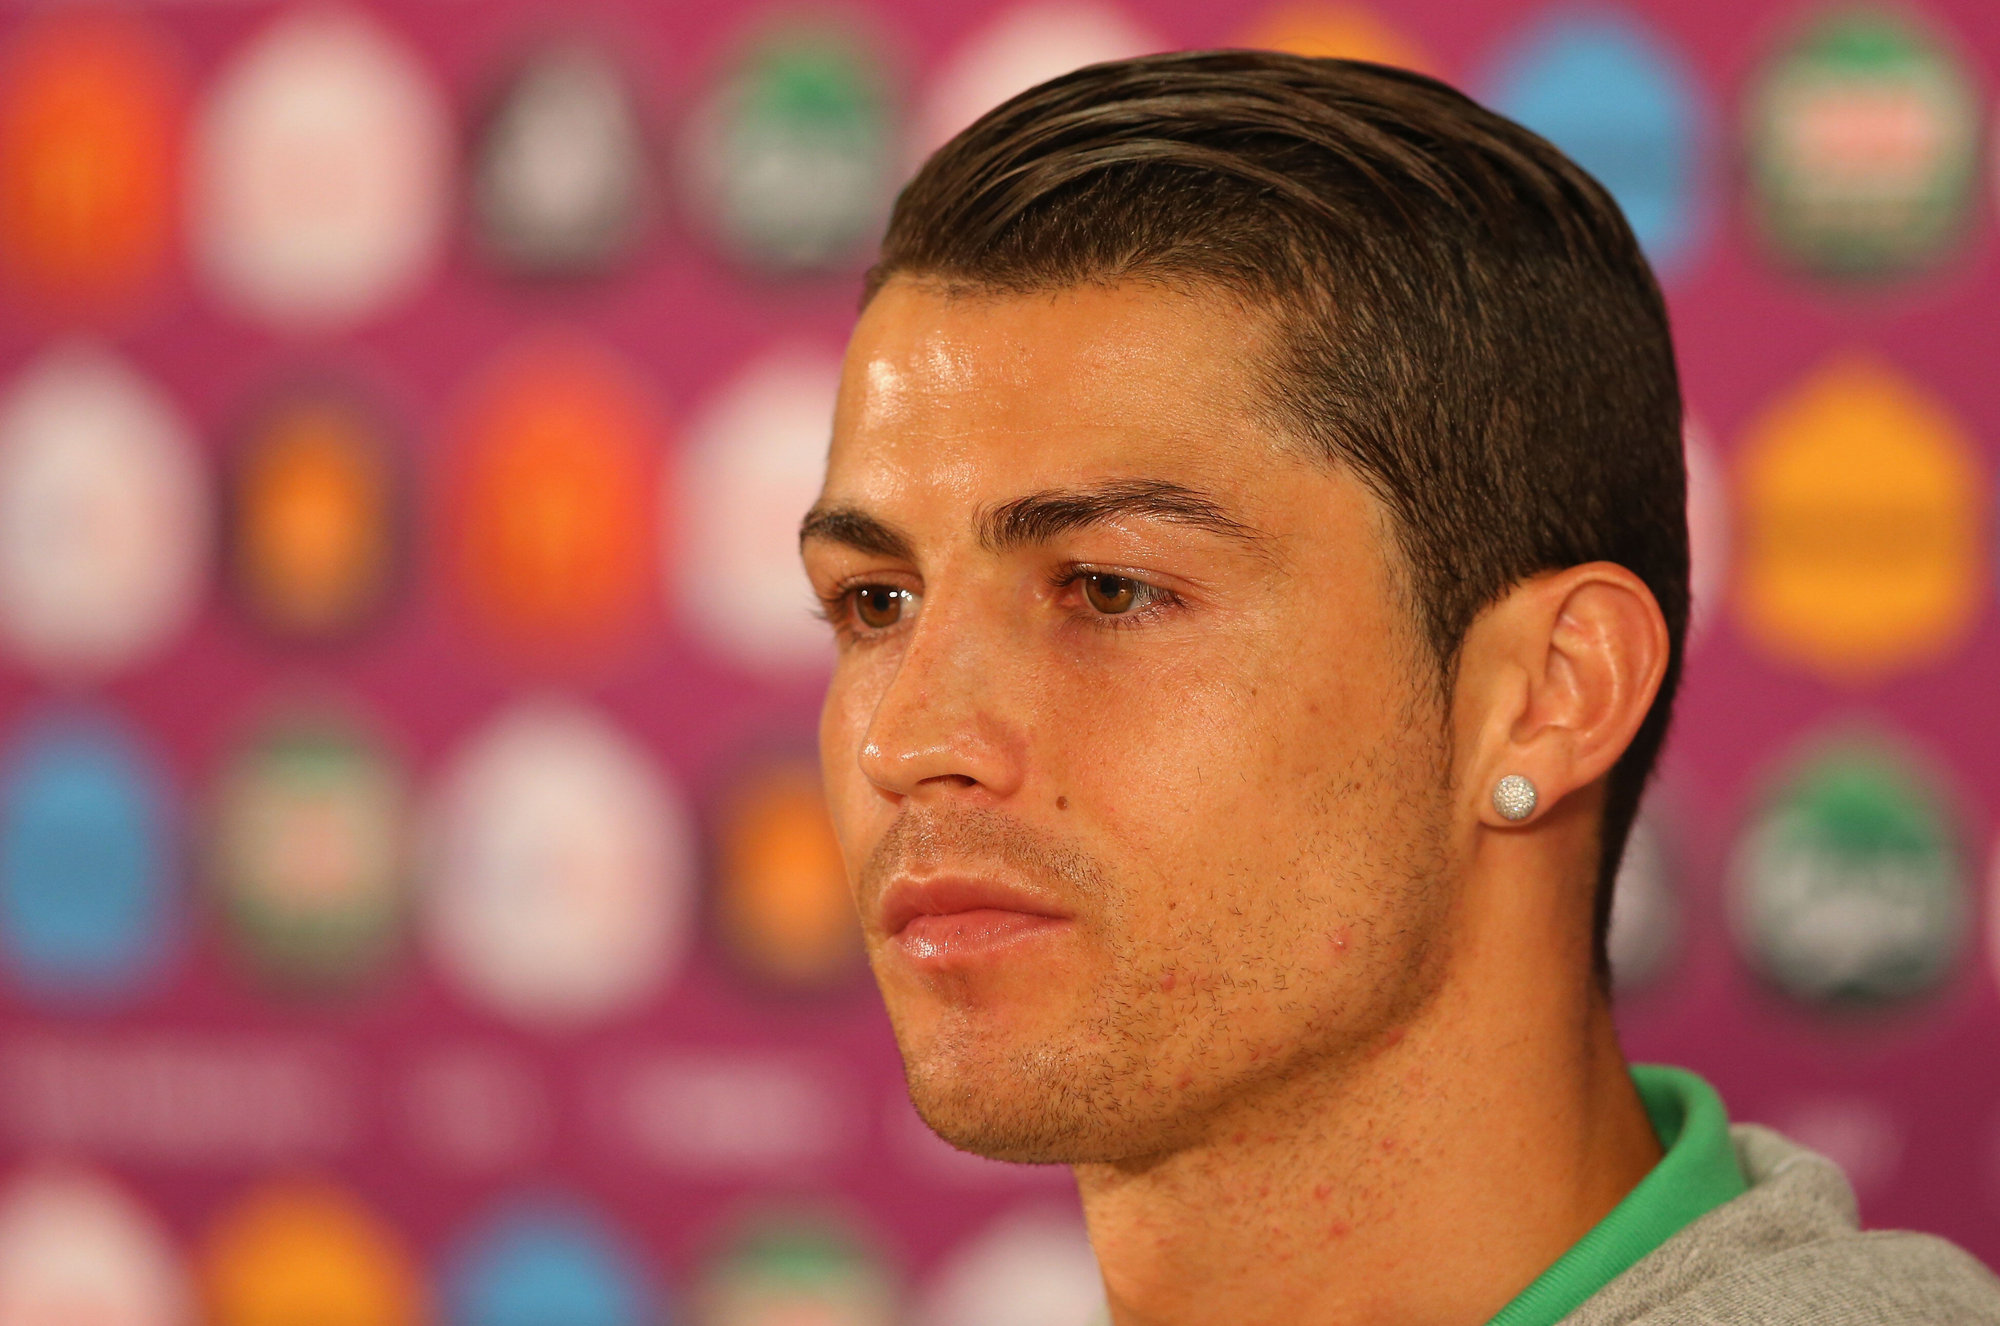 Cristiano Ronaldo New Hairstyles Hd Wallpapers Sports Show